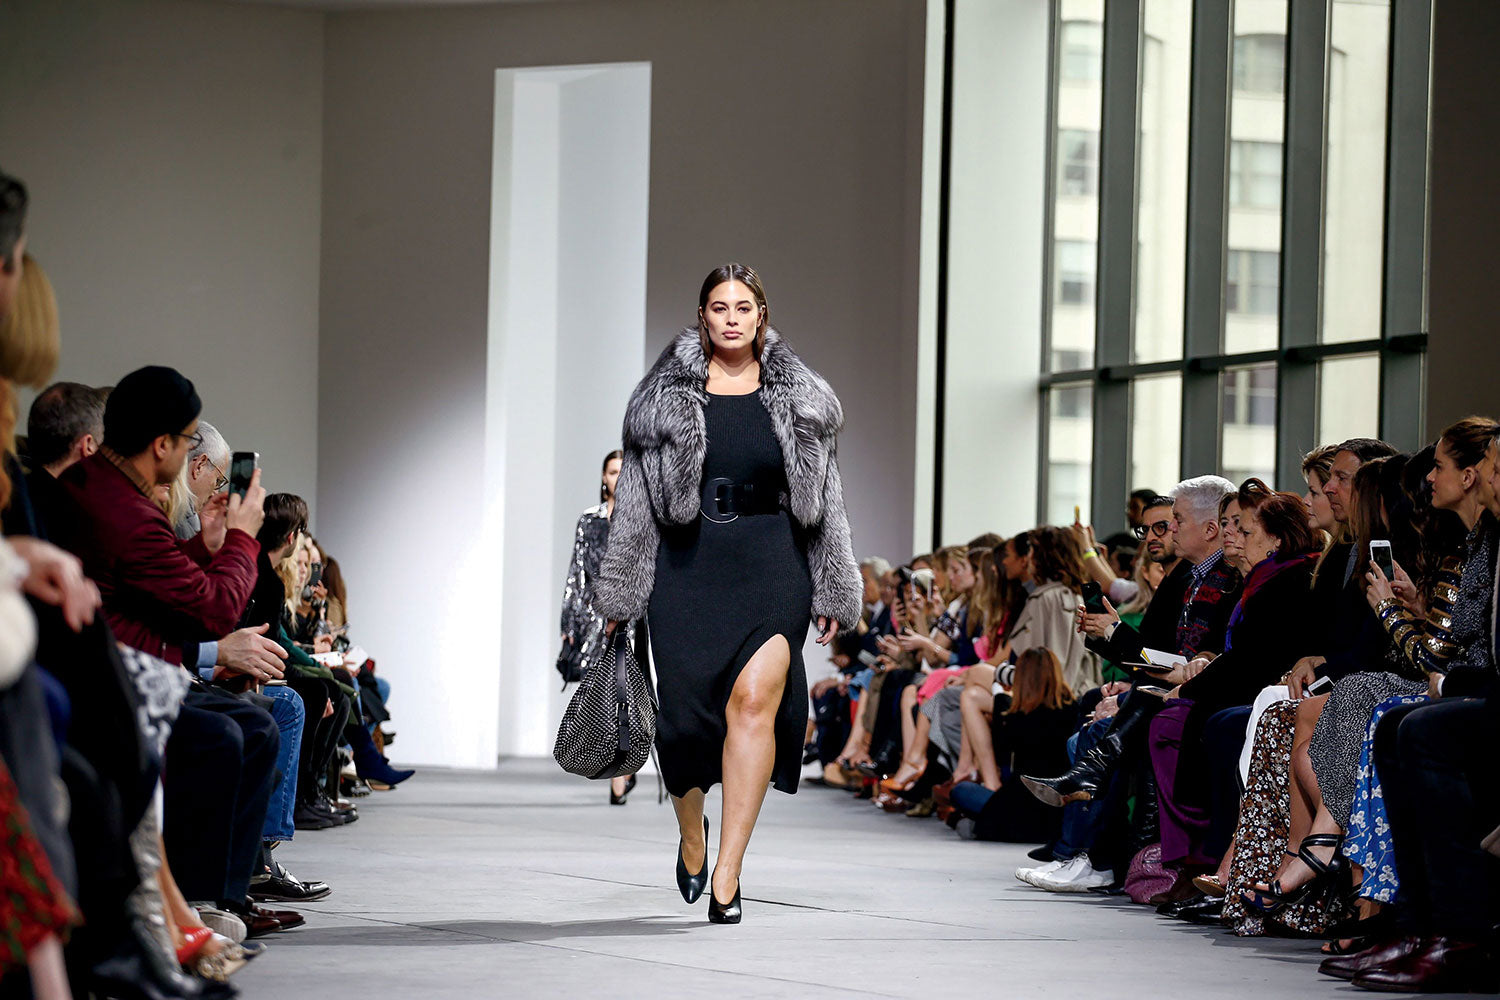 Ashley graham plus size inclusive model on the runway in Michael Kors